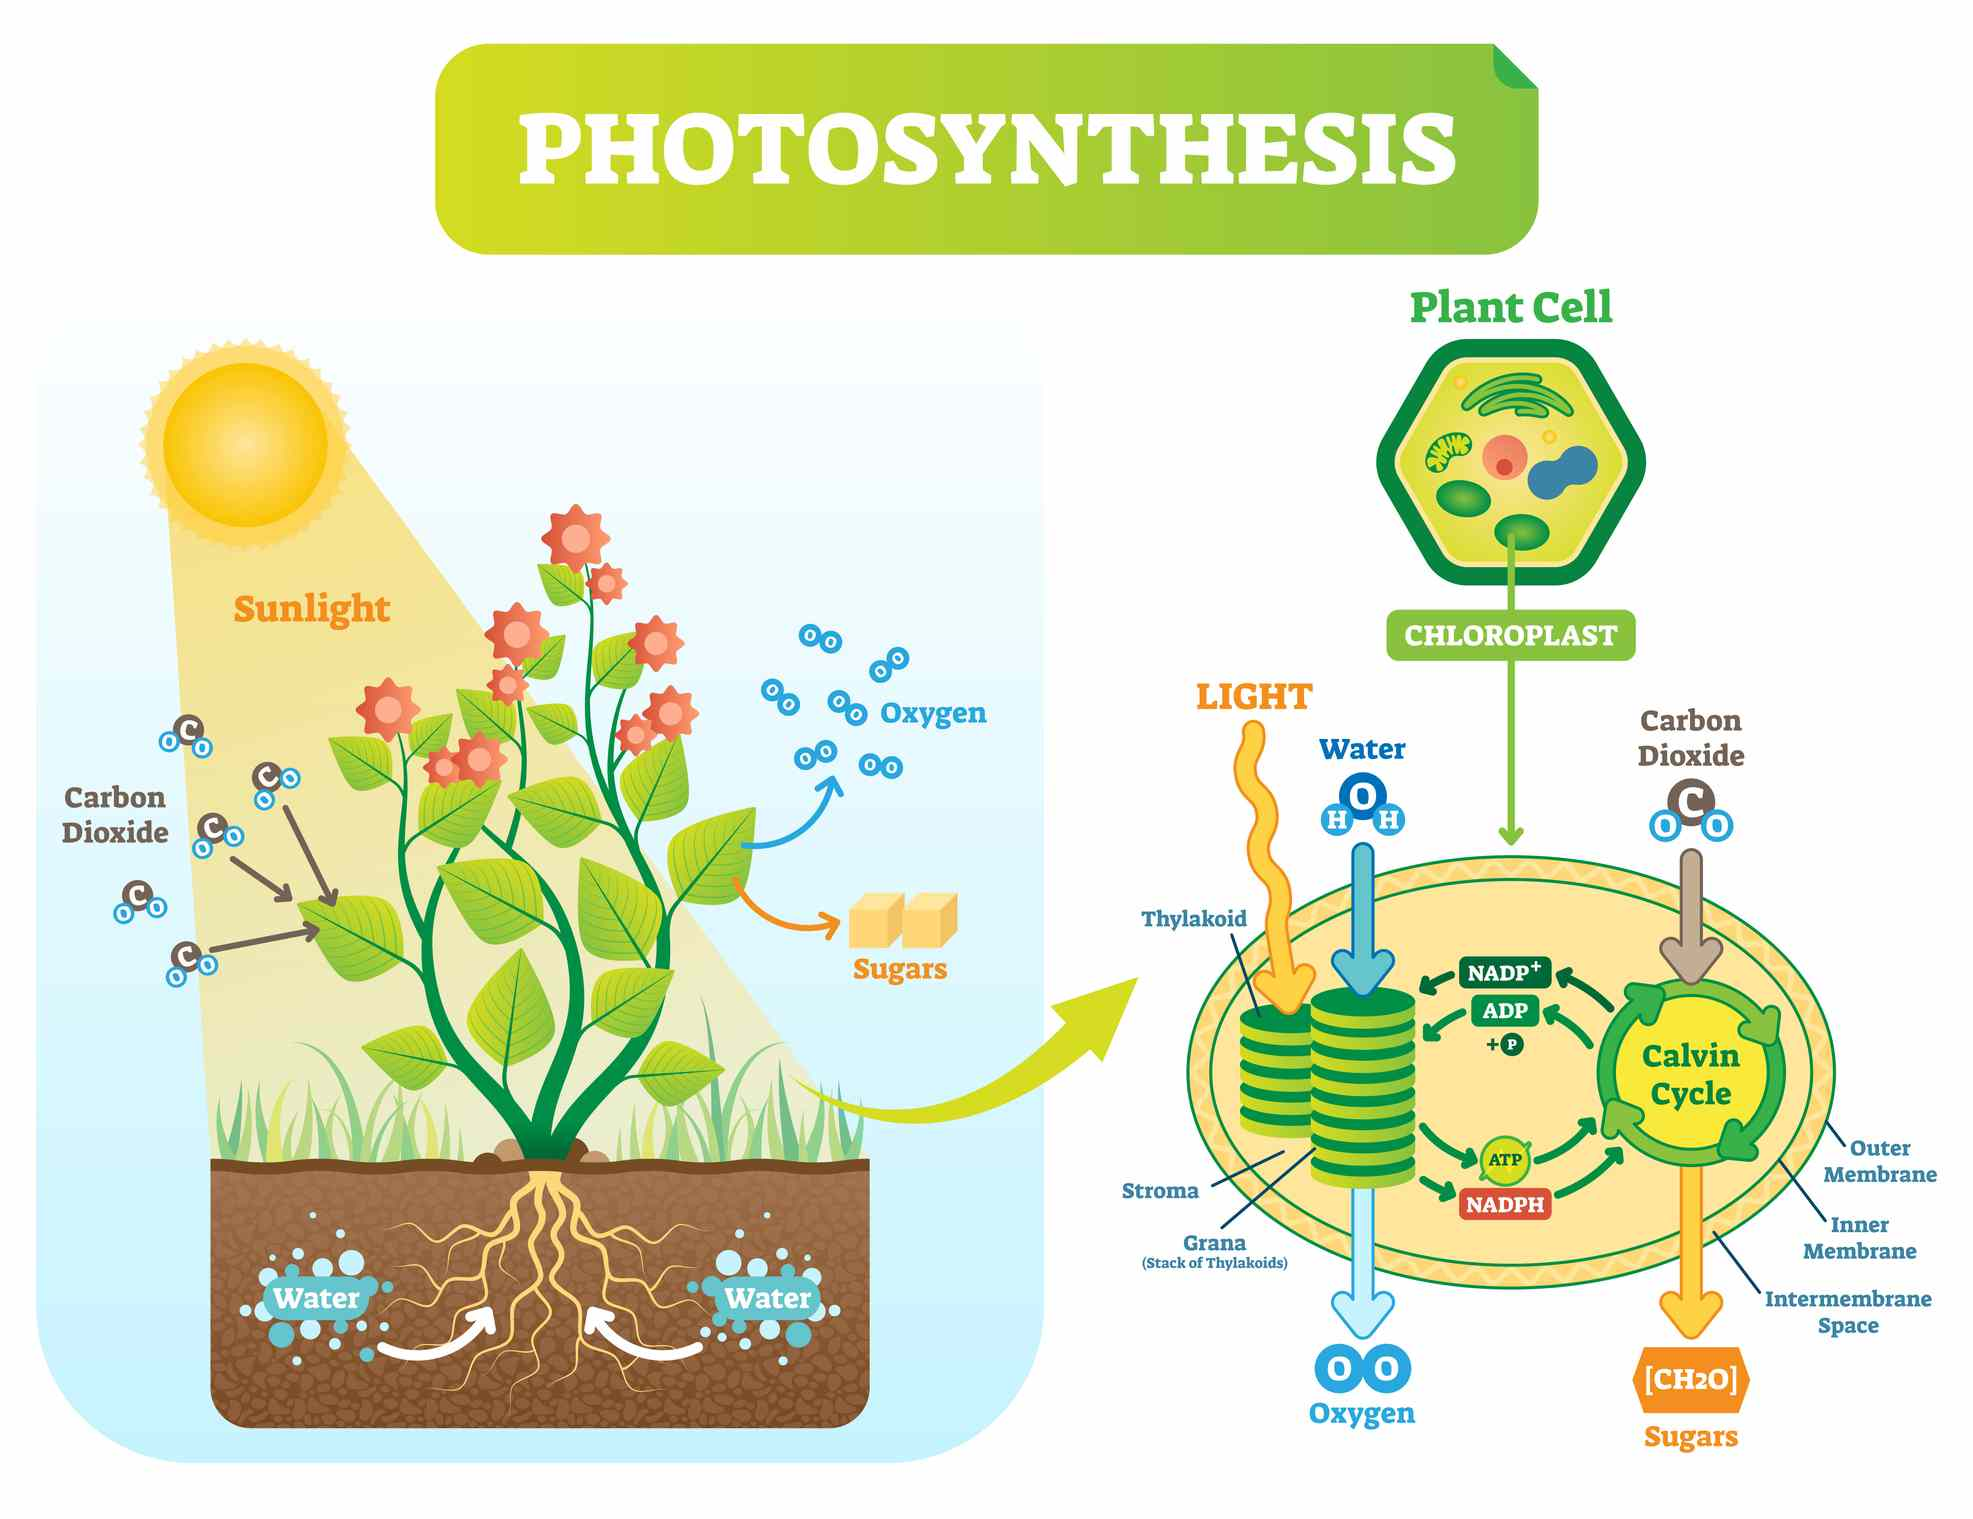 photosynthesis diagram cell photosynthese cycle carbon water dioxide oxygen vector plan fotosintesi biologische rate met sugars vectormine getty affect